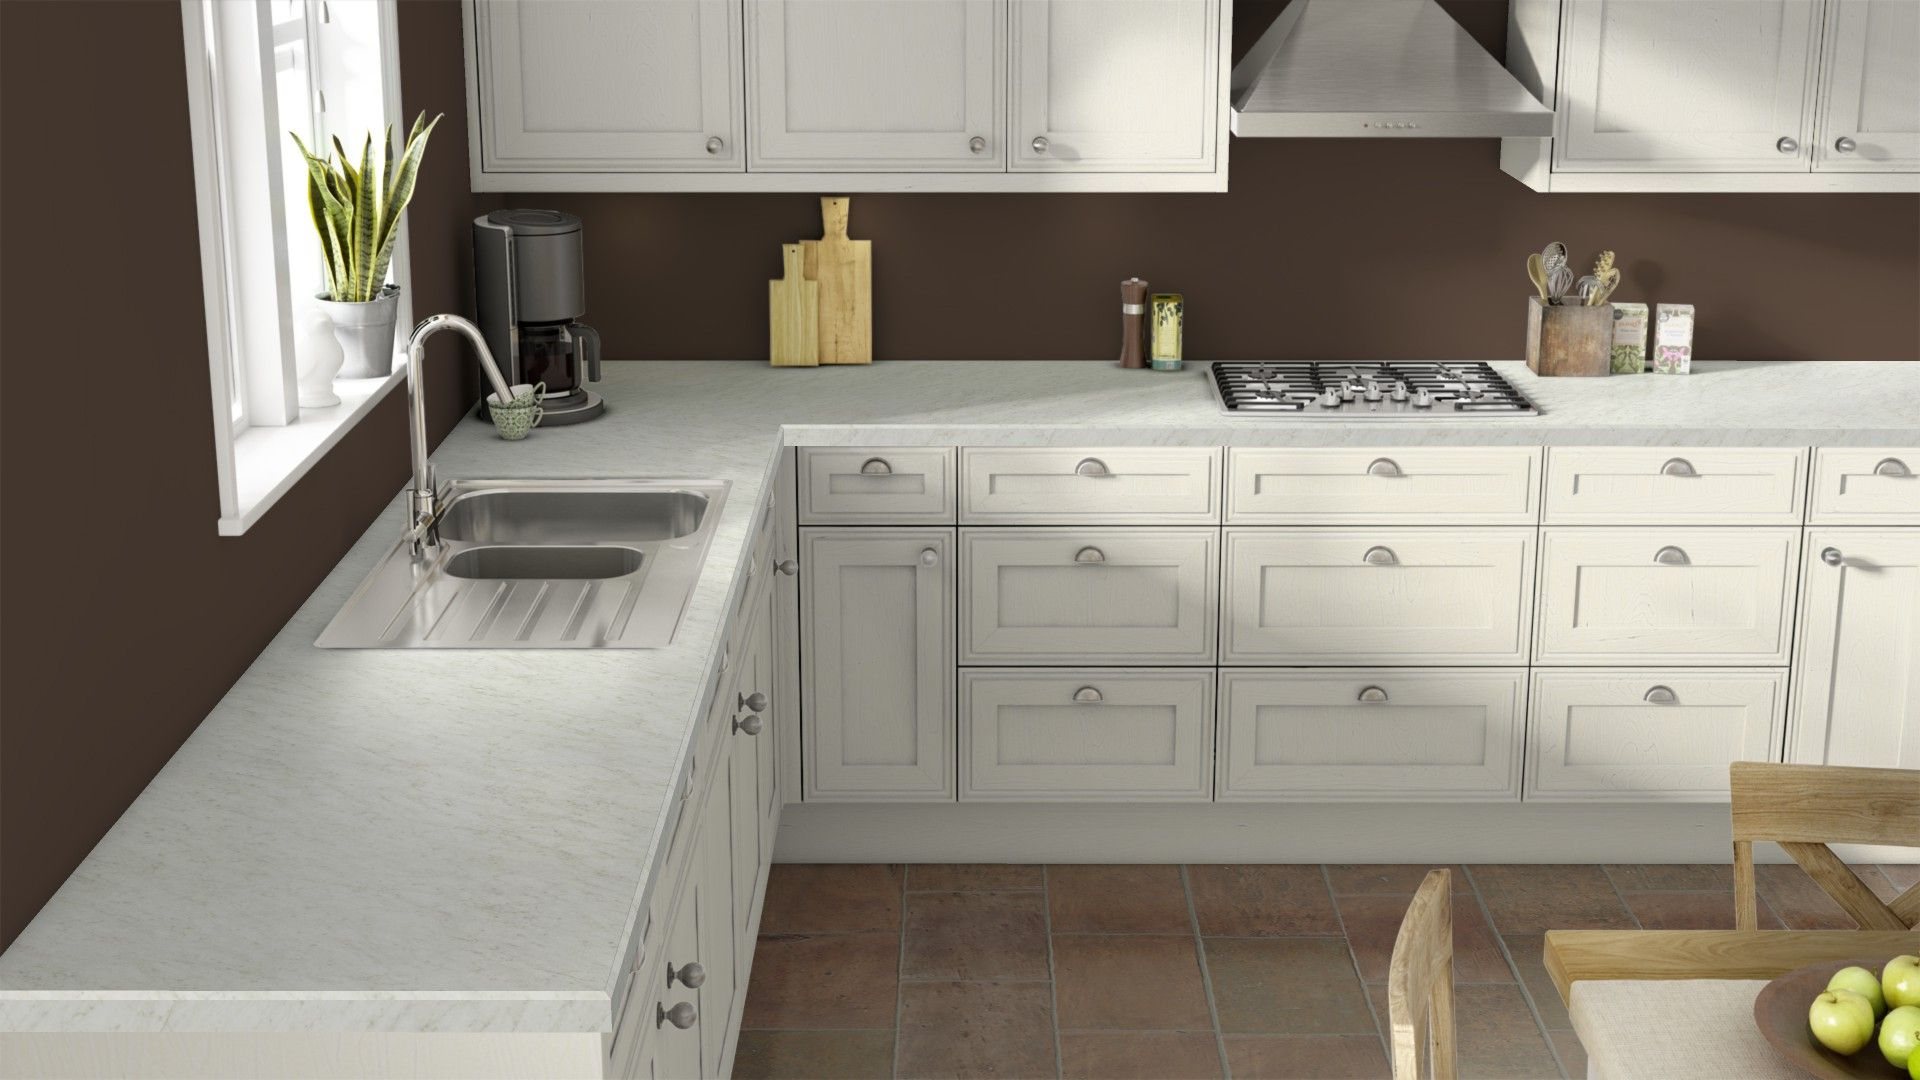 Get Inspired For Your Kitchen Renovation With Wilsonarts Free Design Visualizer White Carrara